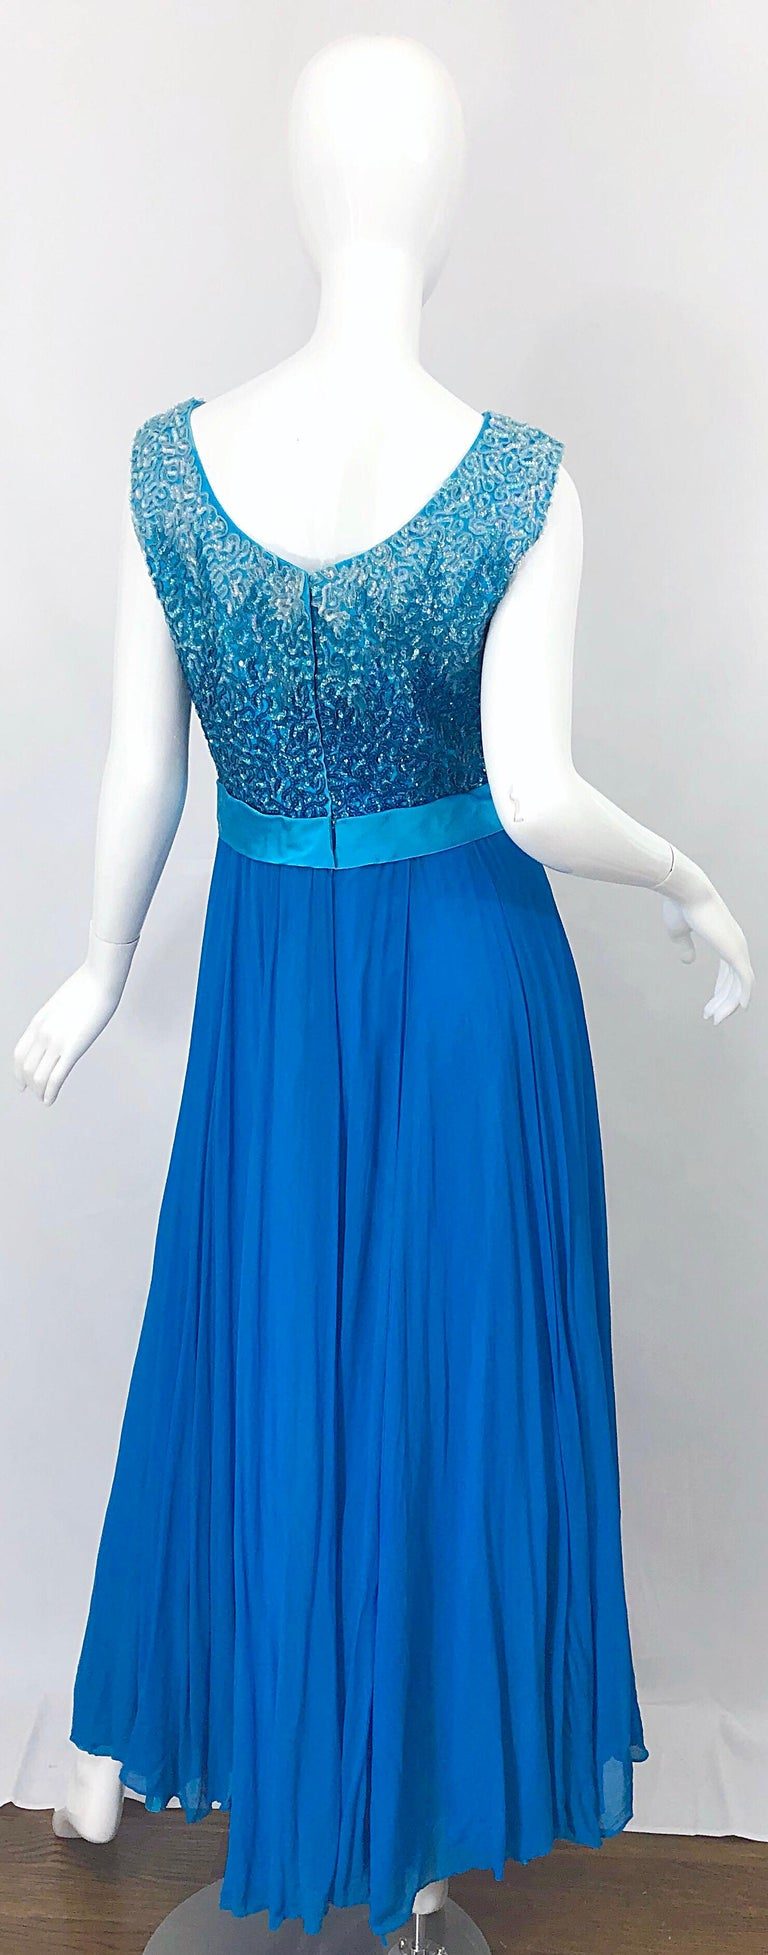 Women's 1950s Emma Domb Turquoise Blue Ombre Sequined Silk Chiffon Vintage 50s Gown For Sale